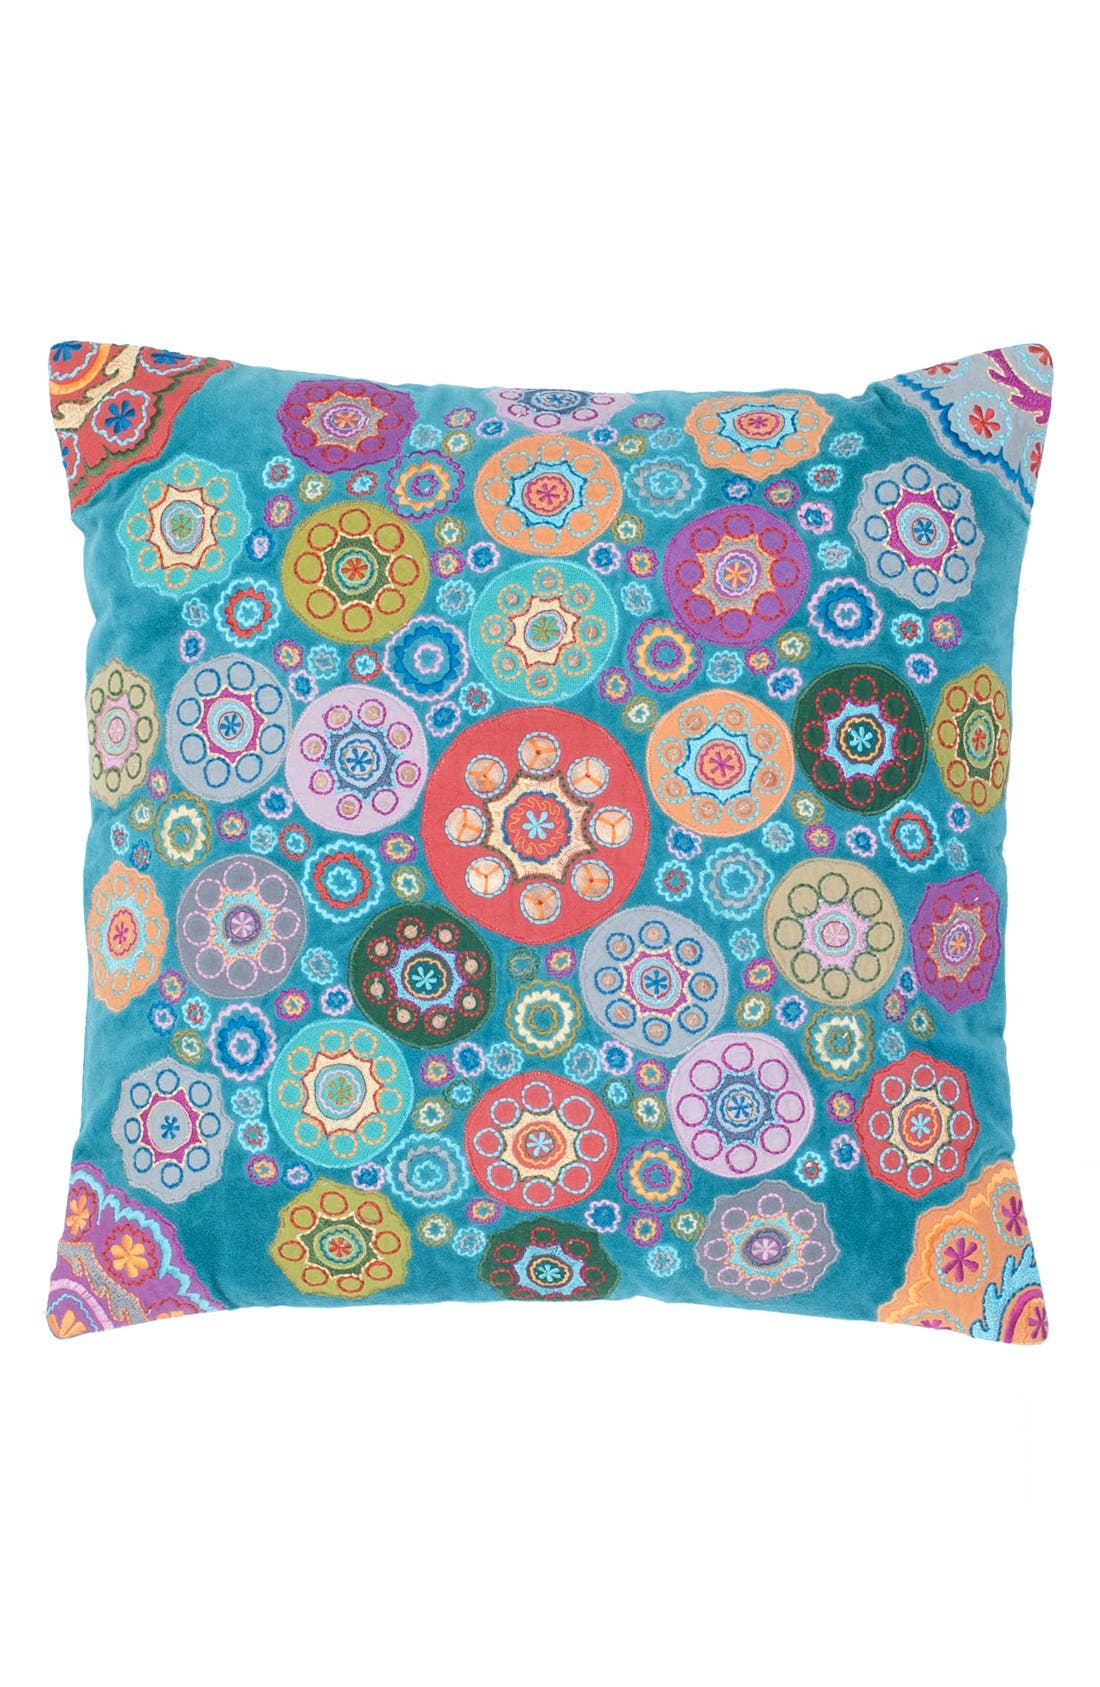 Main Image - Rizzy Home 'Geo Floral' Accent Pillow